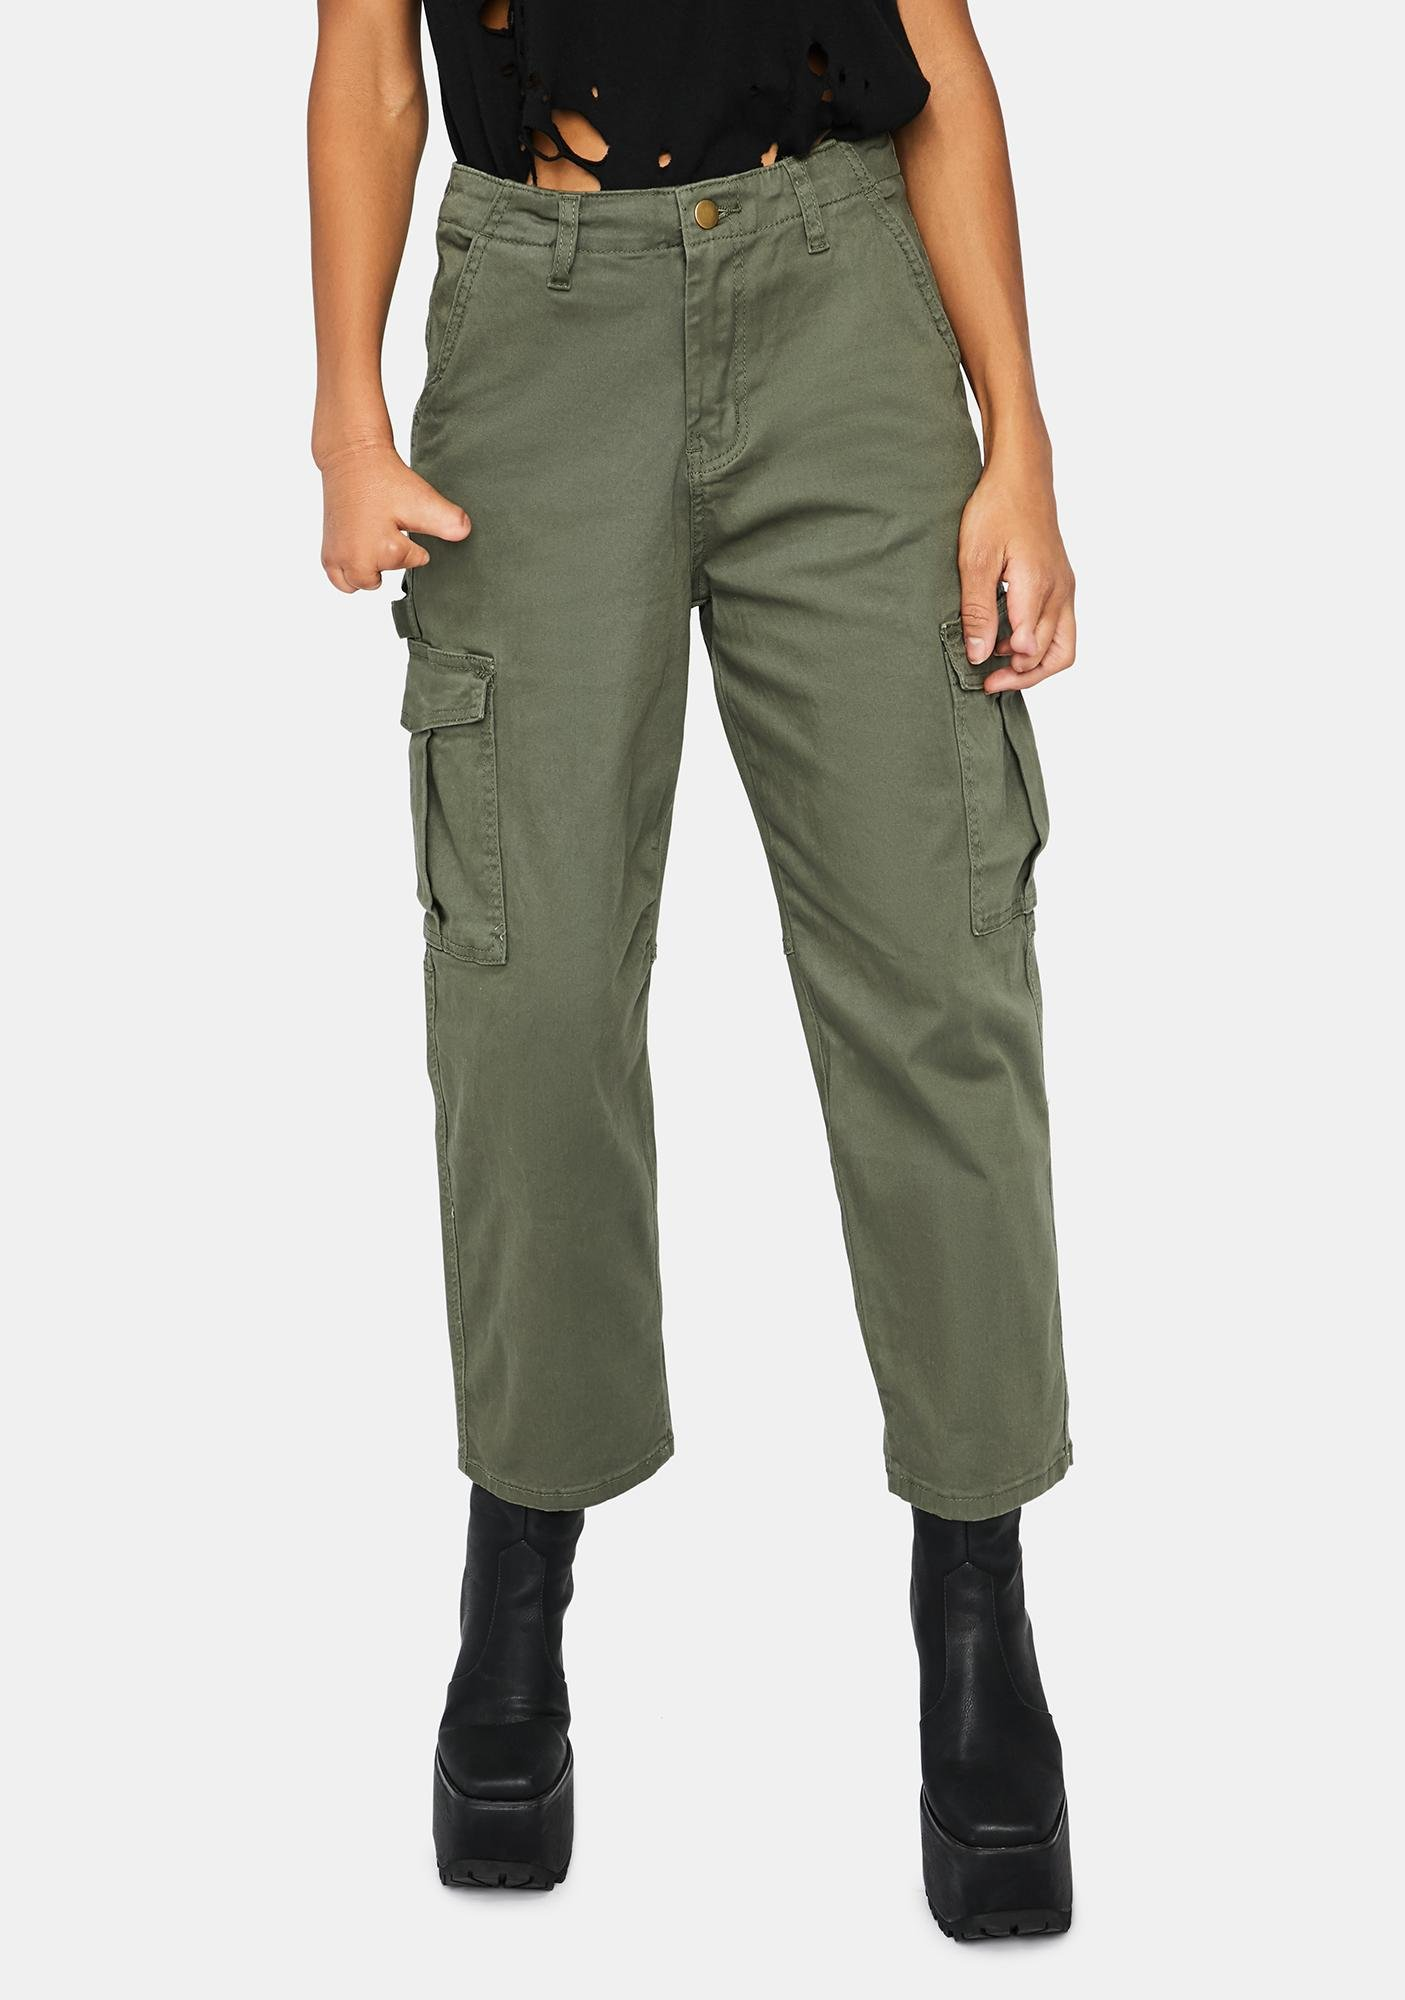 Olive Undercover Dream Cargo Pants